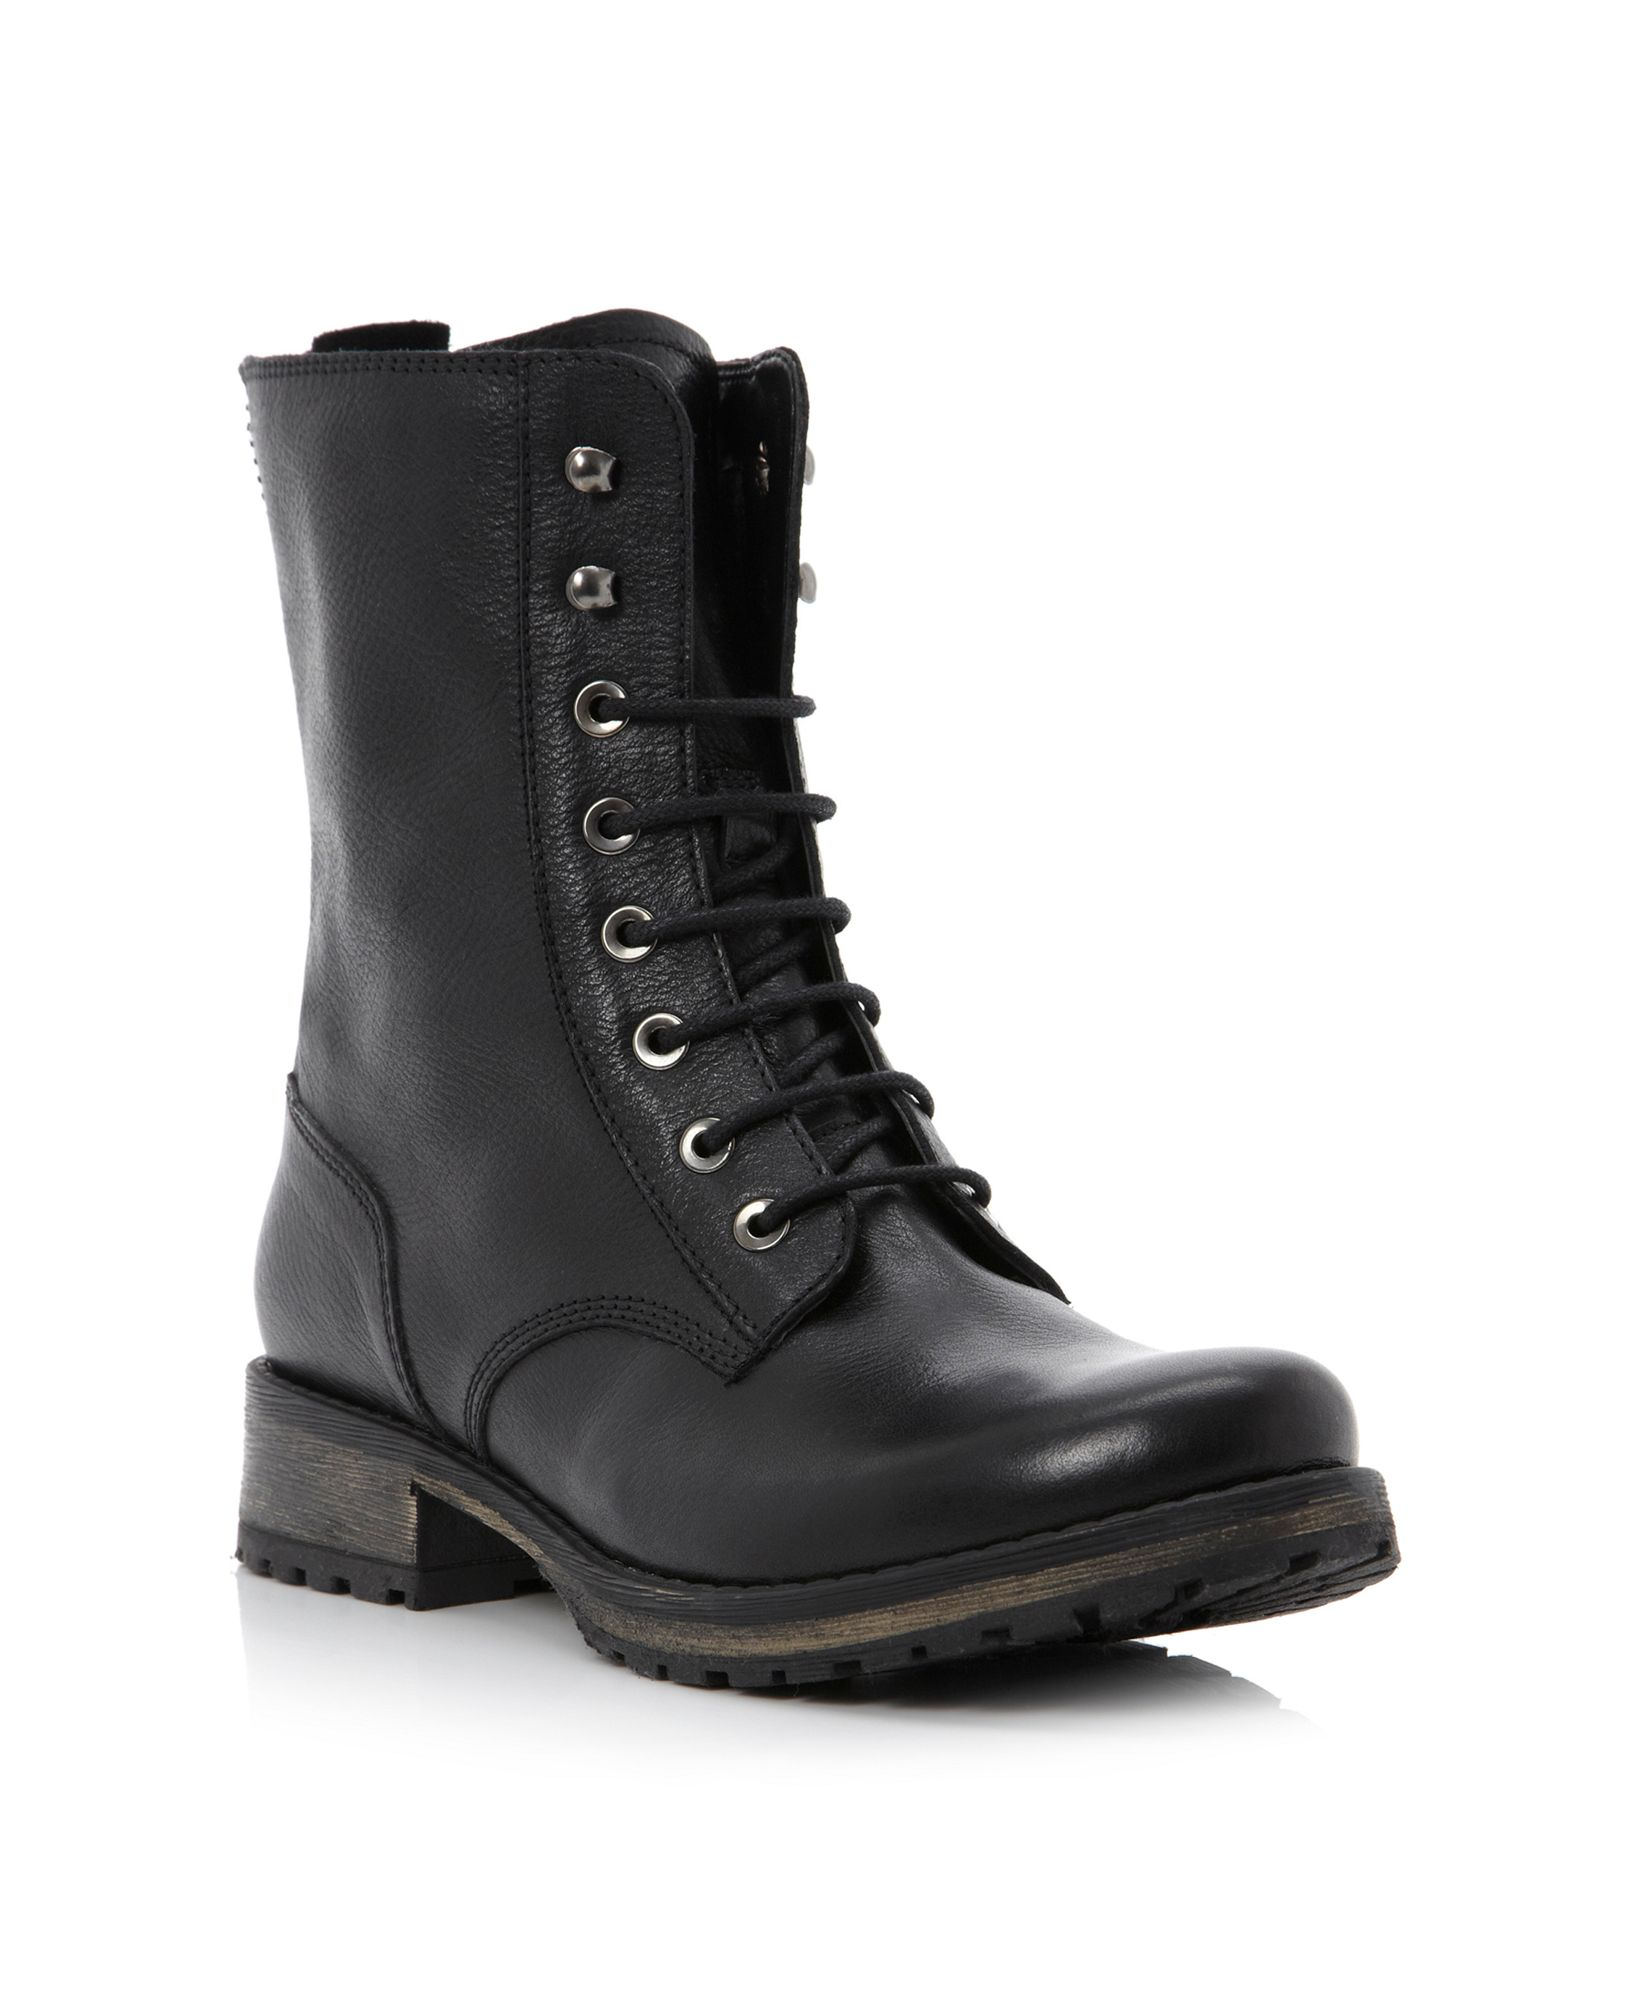 Dune Prop Front Lace Up Low Boots In Black Black Leather